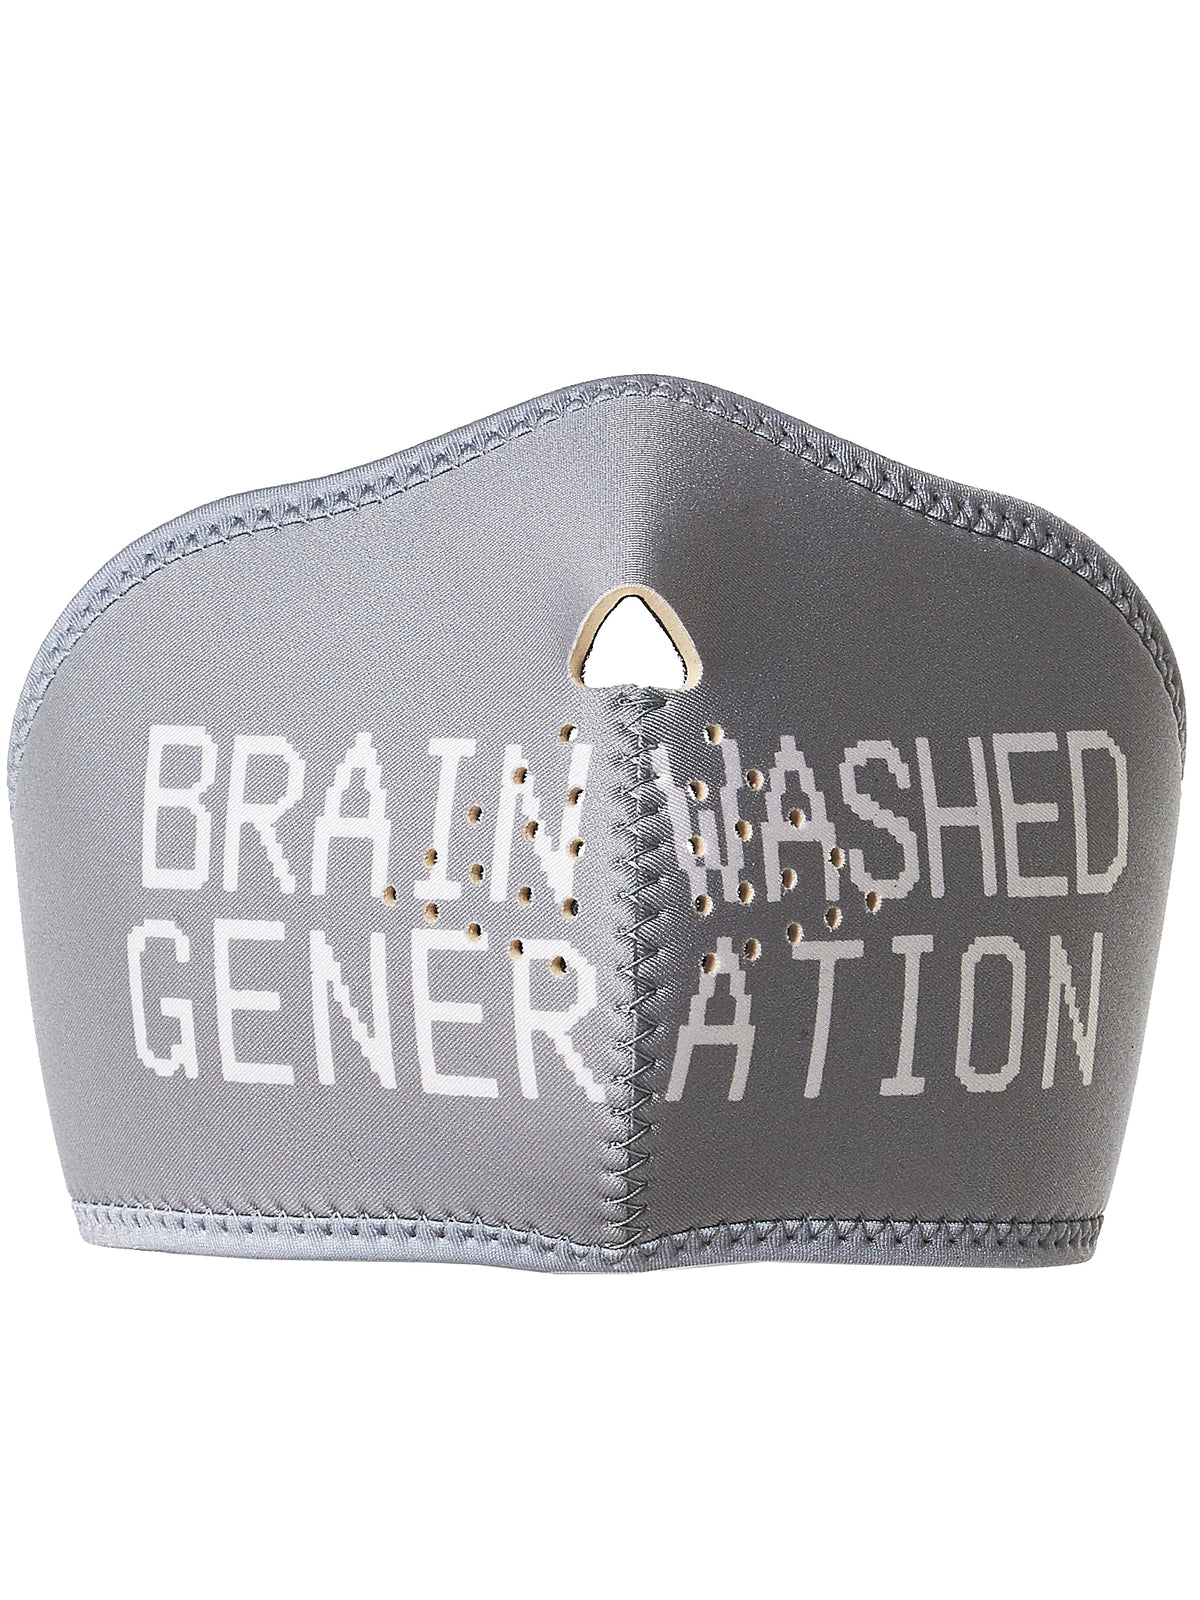 'Brain Washed' Padded Respirator (UCT4Z01-GRAY)